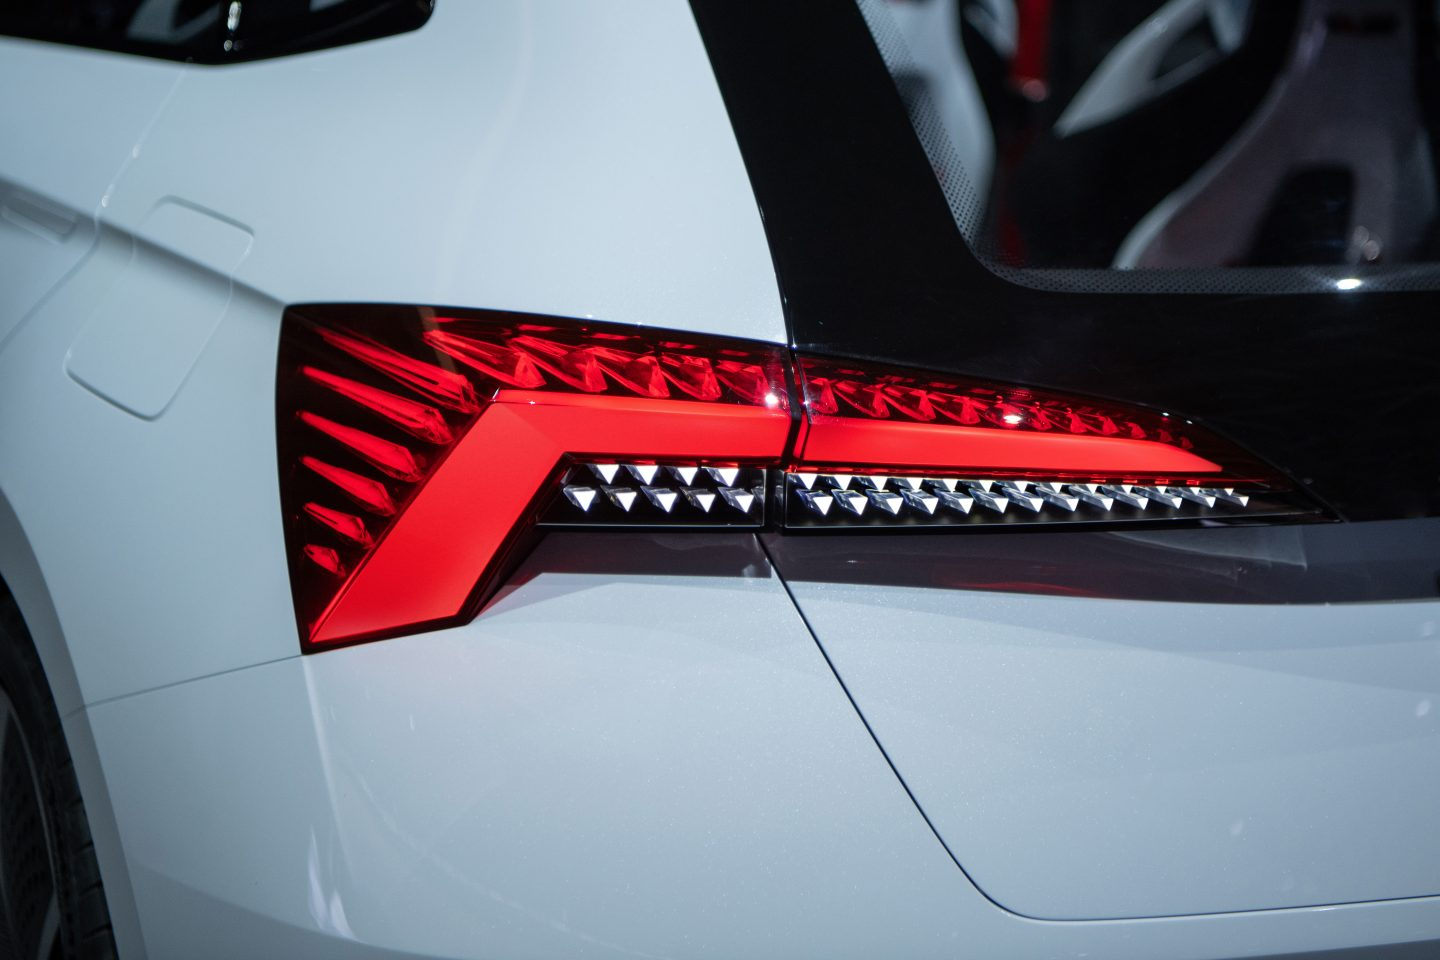 vision-rs-skoda-paris-rear-light-1